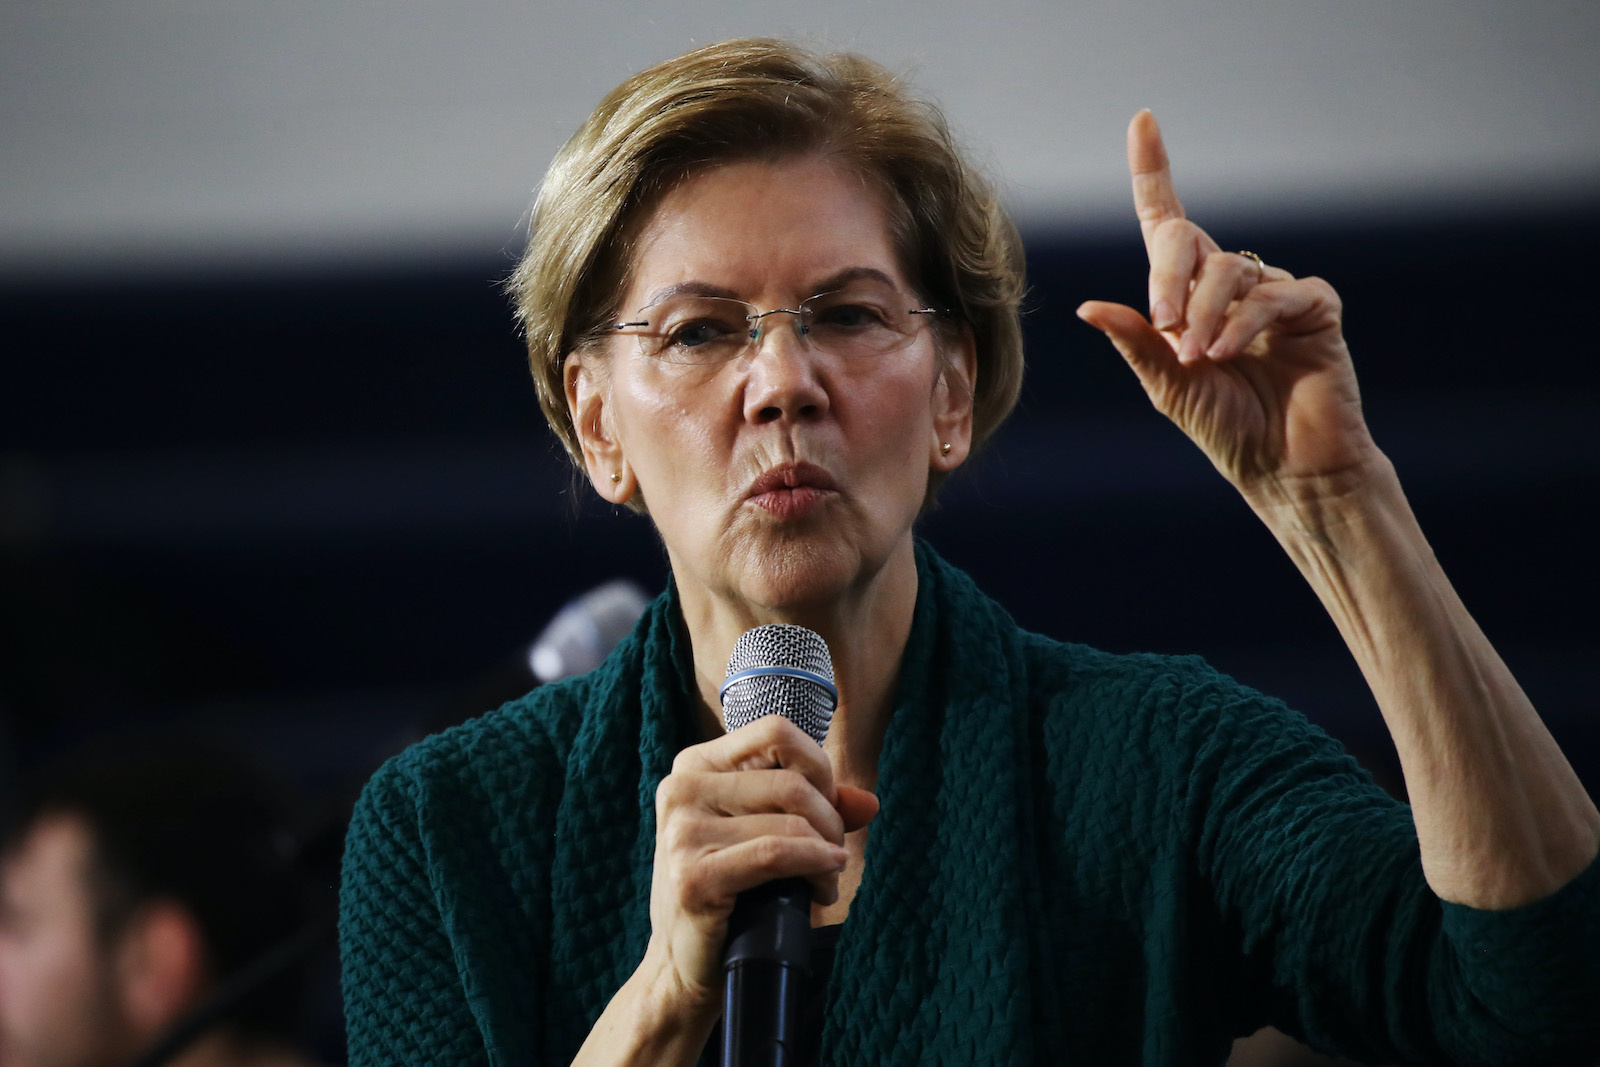 Elizabeth Warren slams Michael Bloomberg as an 'egomaniac billionaire' ahead of Democratic debate